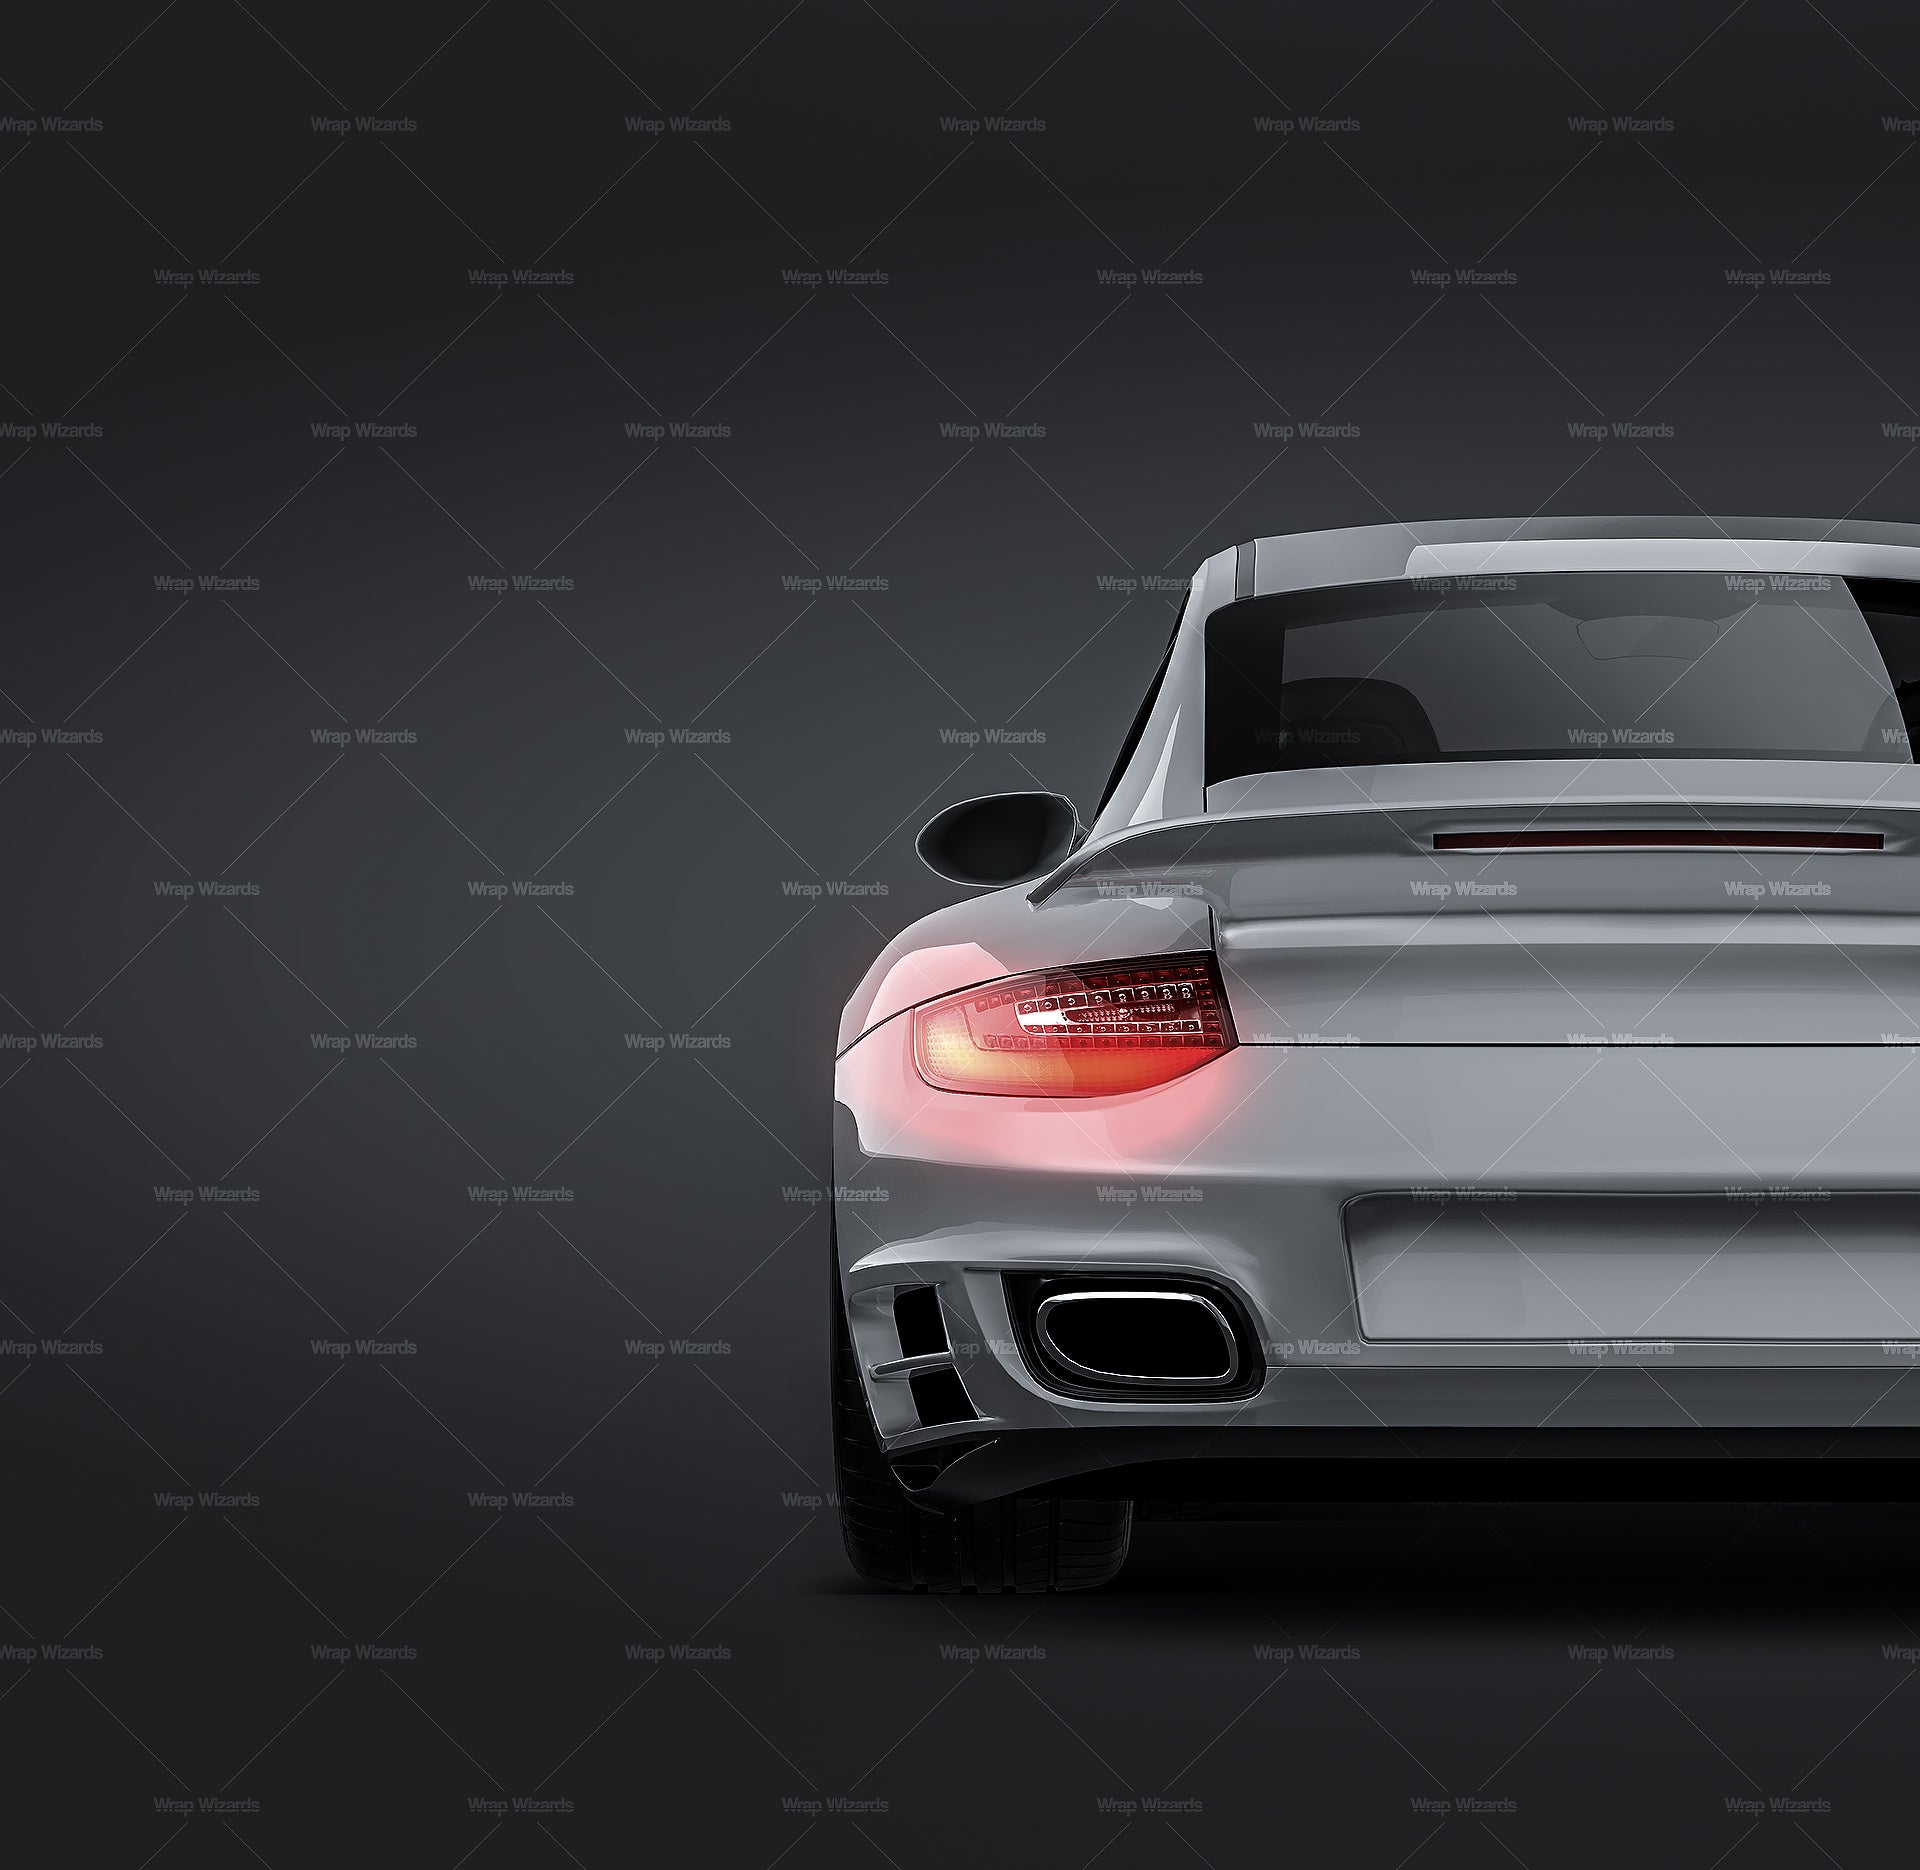 Porsche 911 997 Turbo 2010 glossy finish - all sides Car Mockup Template.psd